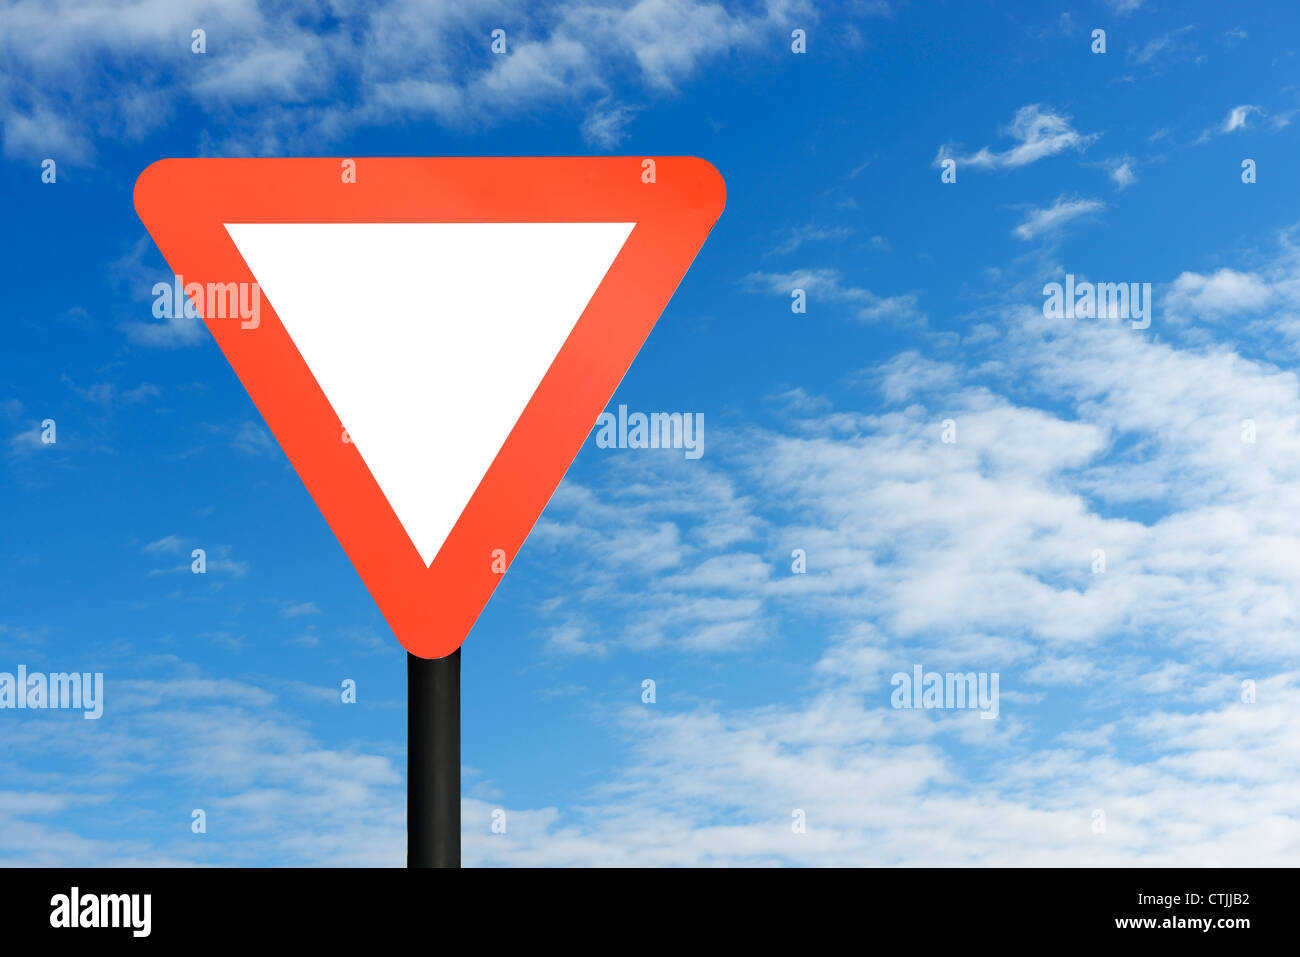 Red blank triangular road sign and blue sky - Stock Image